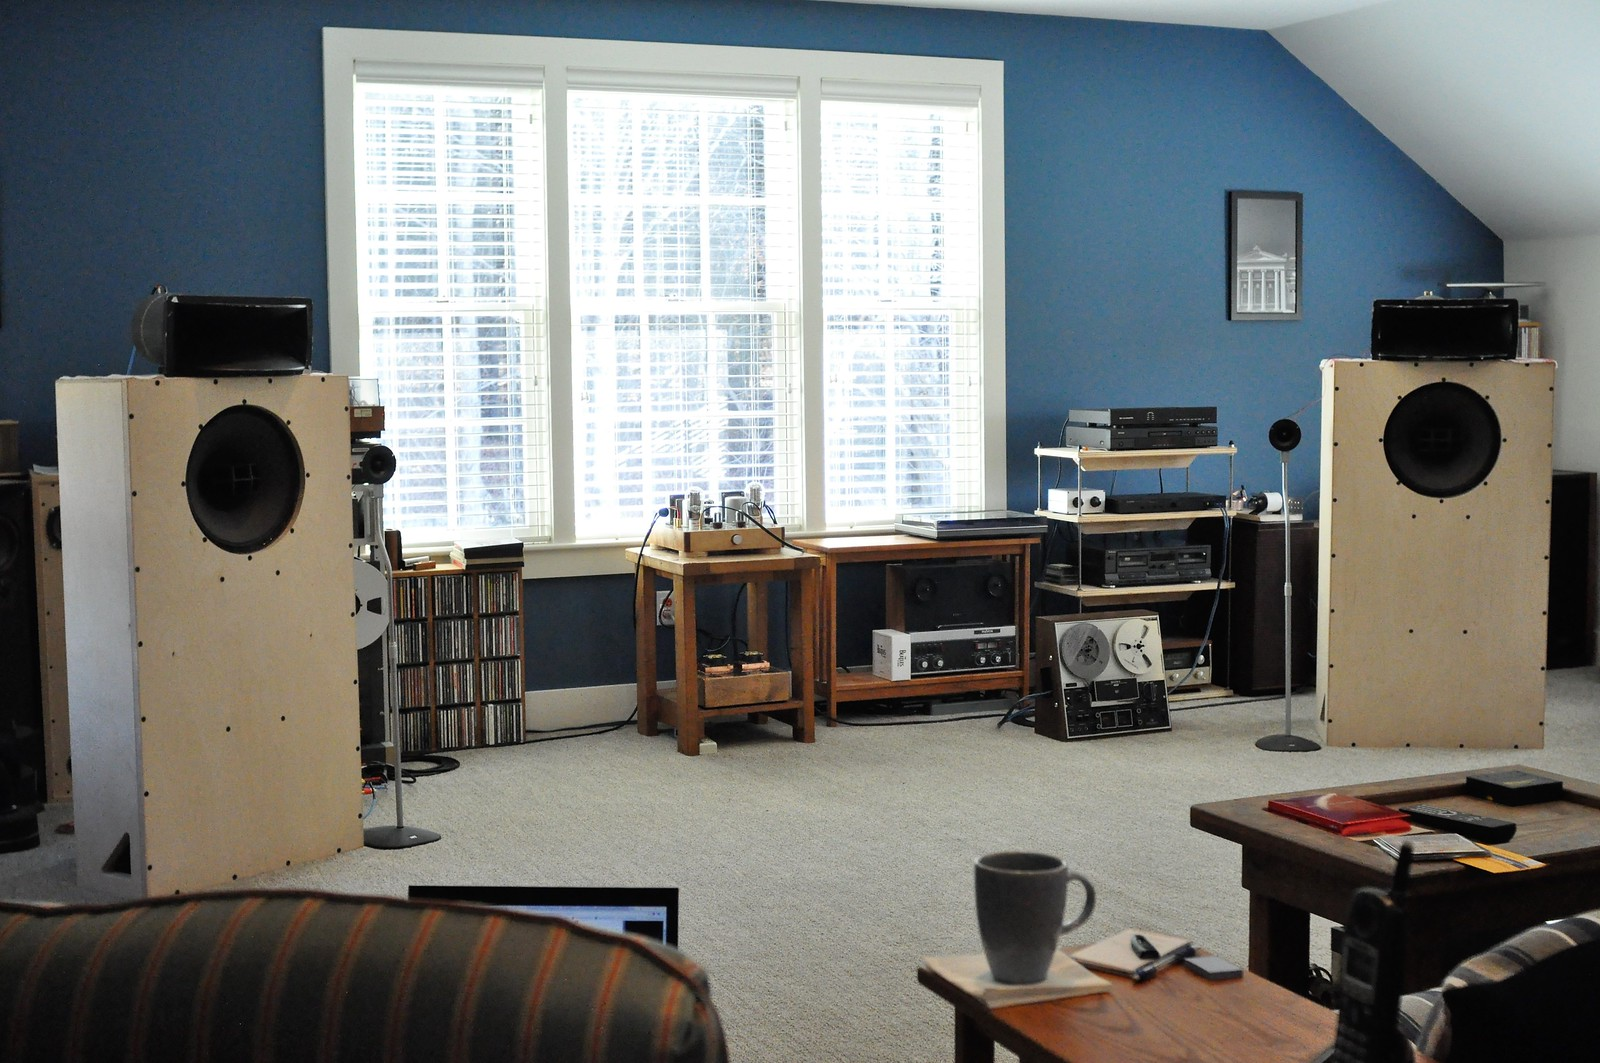 Altec 511B Horn, Can It Be Tamed? | Page 2 | HiFi Haven